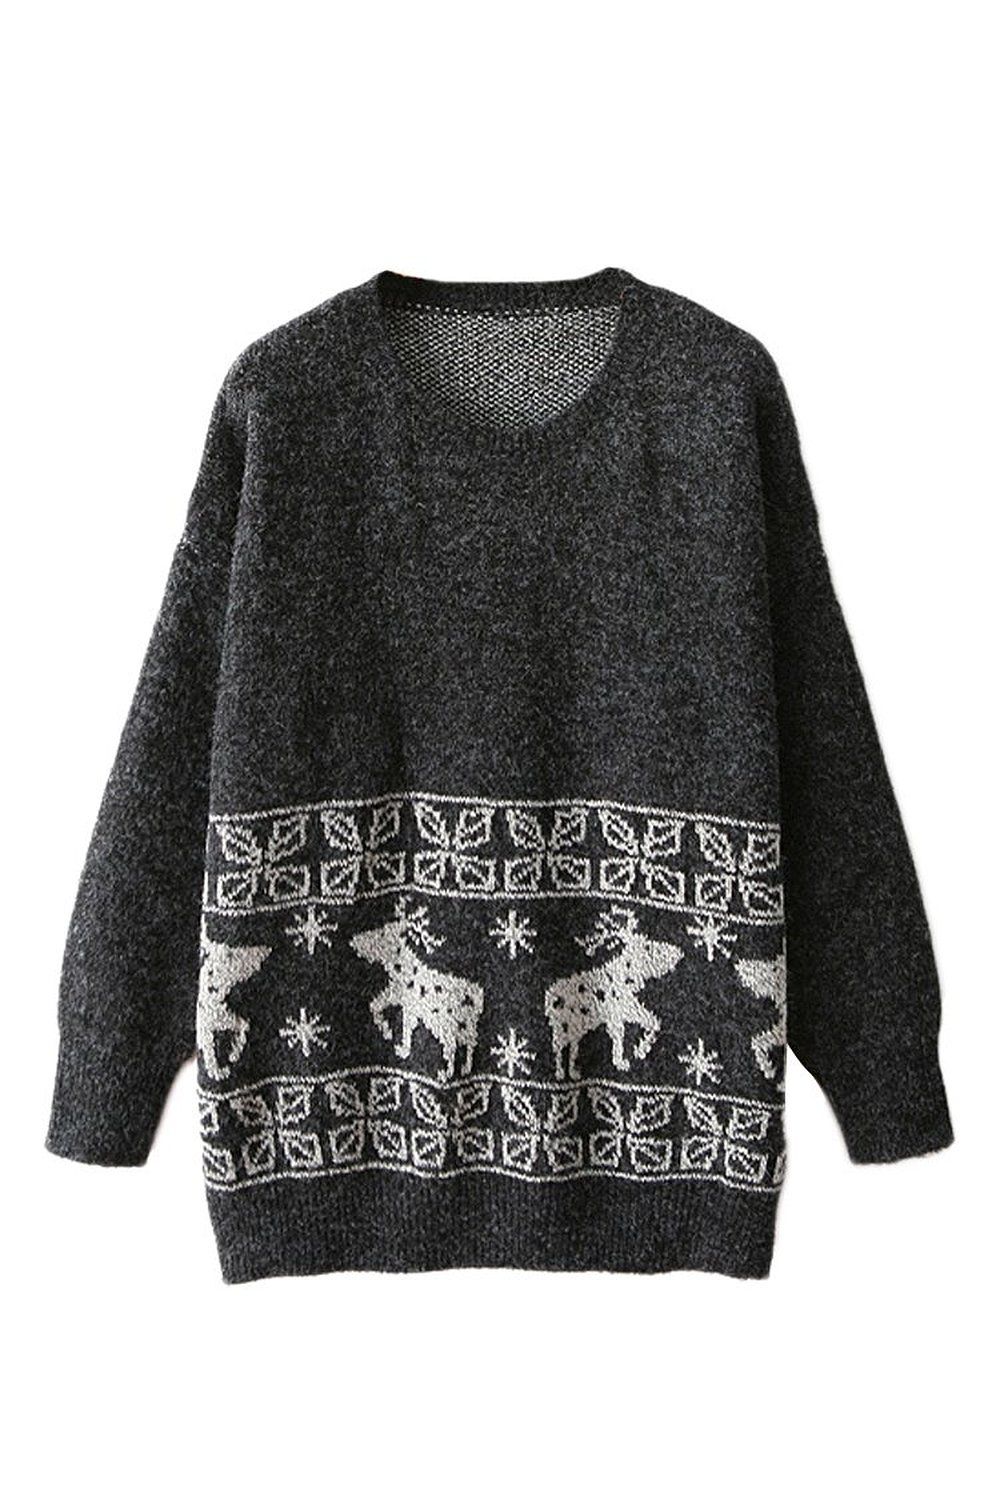 Wind Womens Christmas Reindeer Sweaters Snowflake Sheer Sweatshirt ...